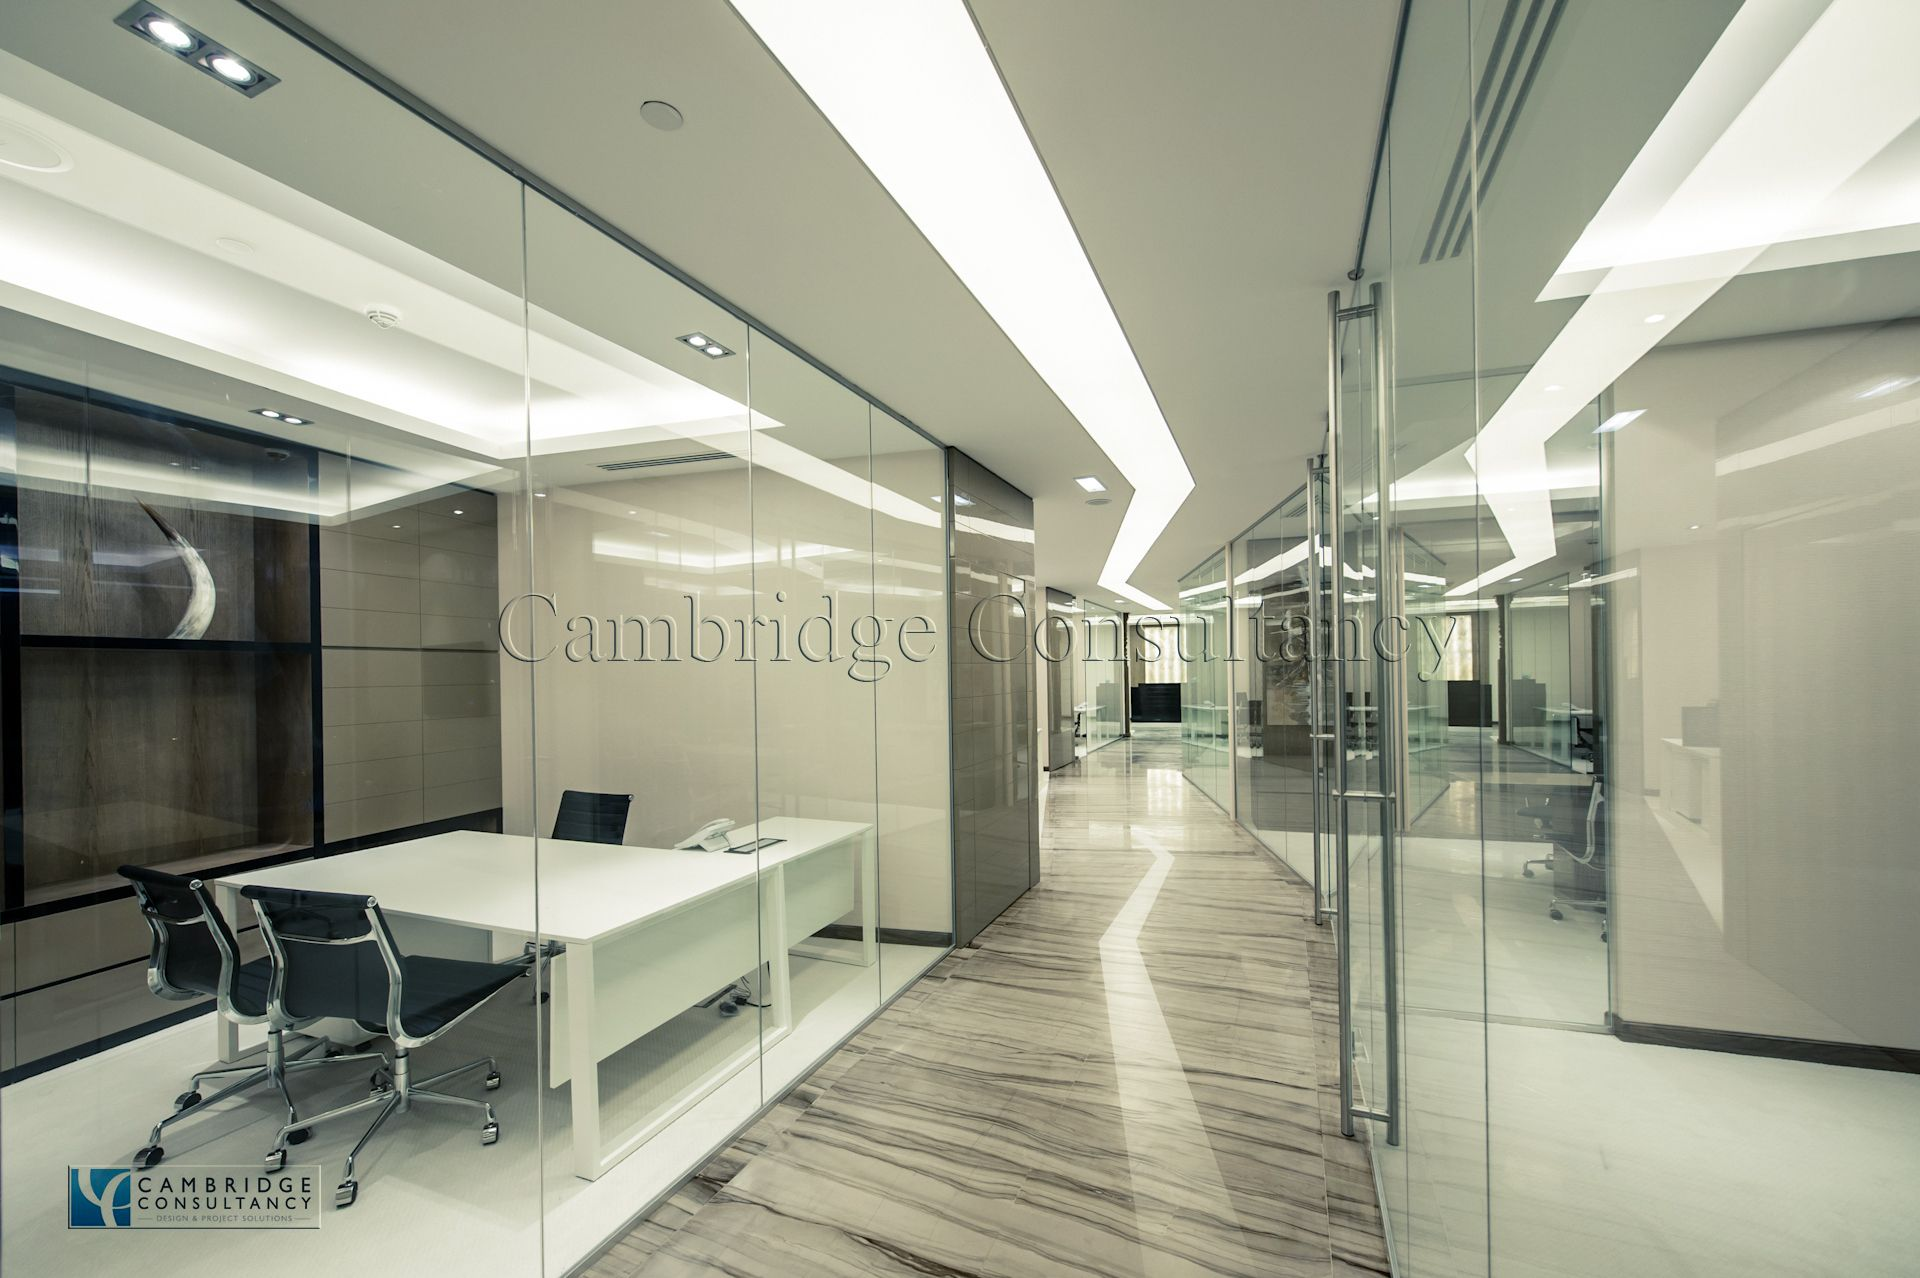 Emerald group designed by cambridge consultancy dubai for Office design cambridge